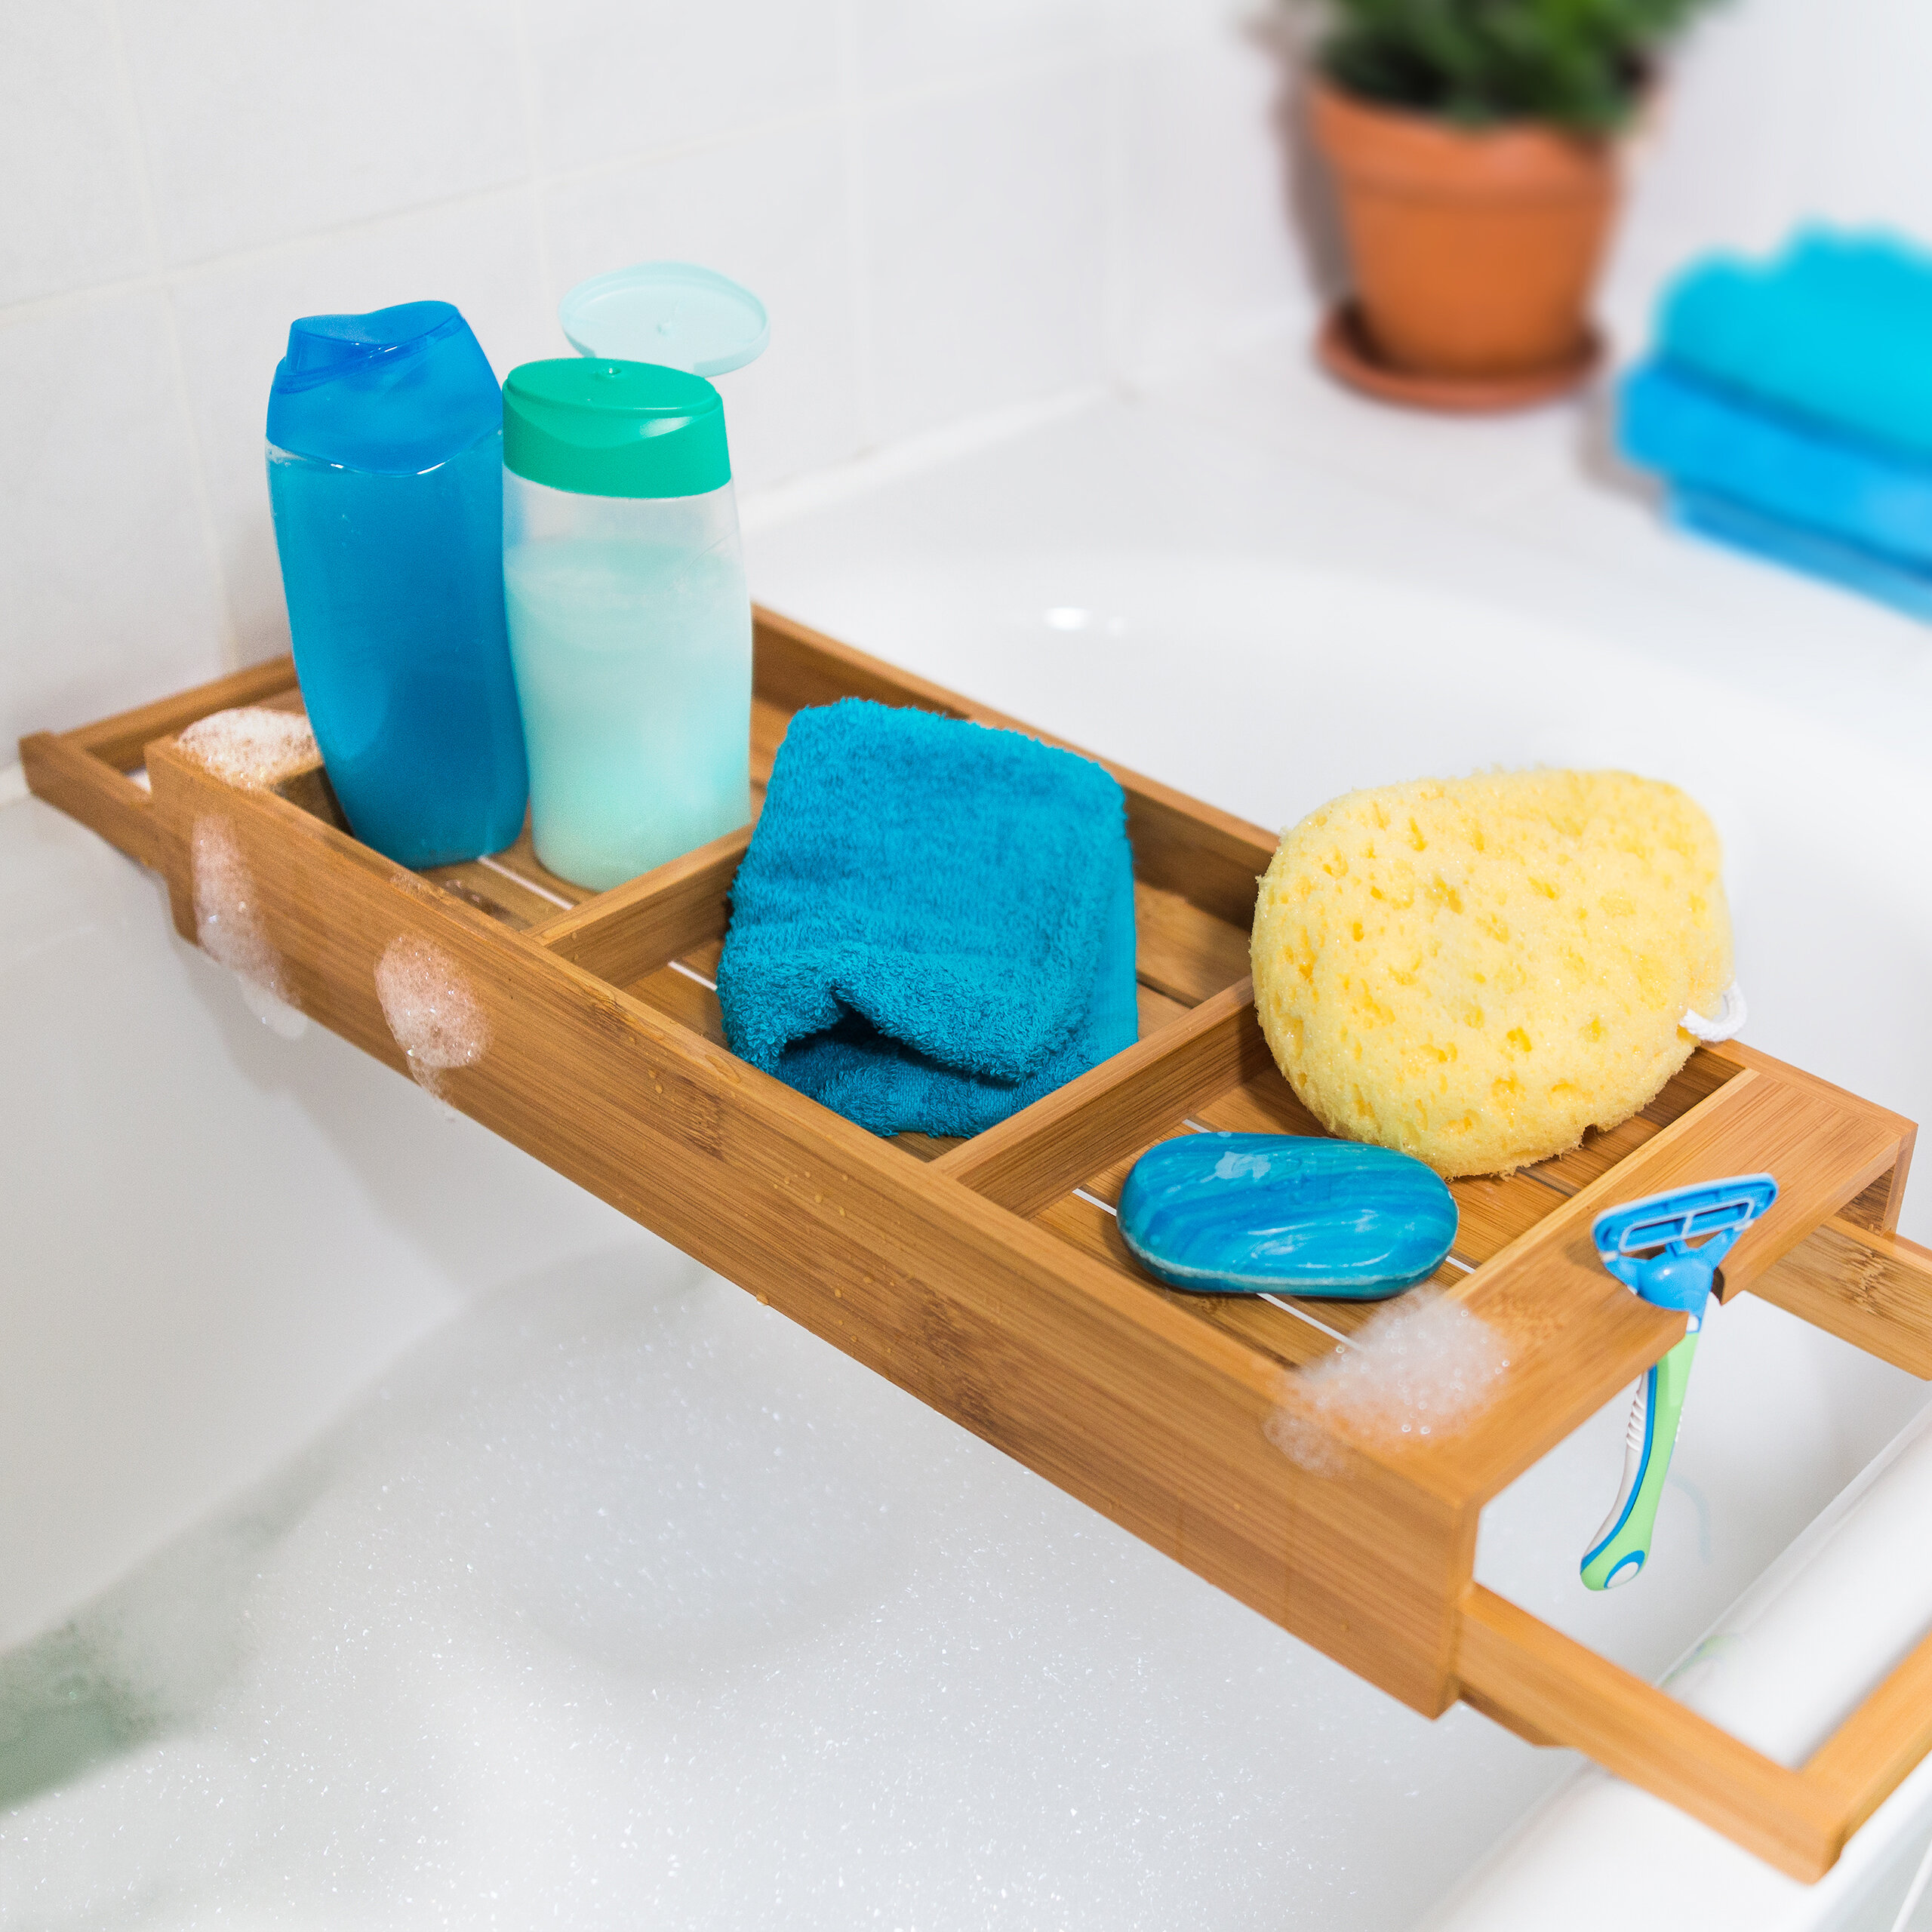 Relaxdays Bamboo Bathroom Caddy Tub Tray & Reviews | Wayfair.co.uk